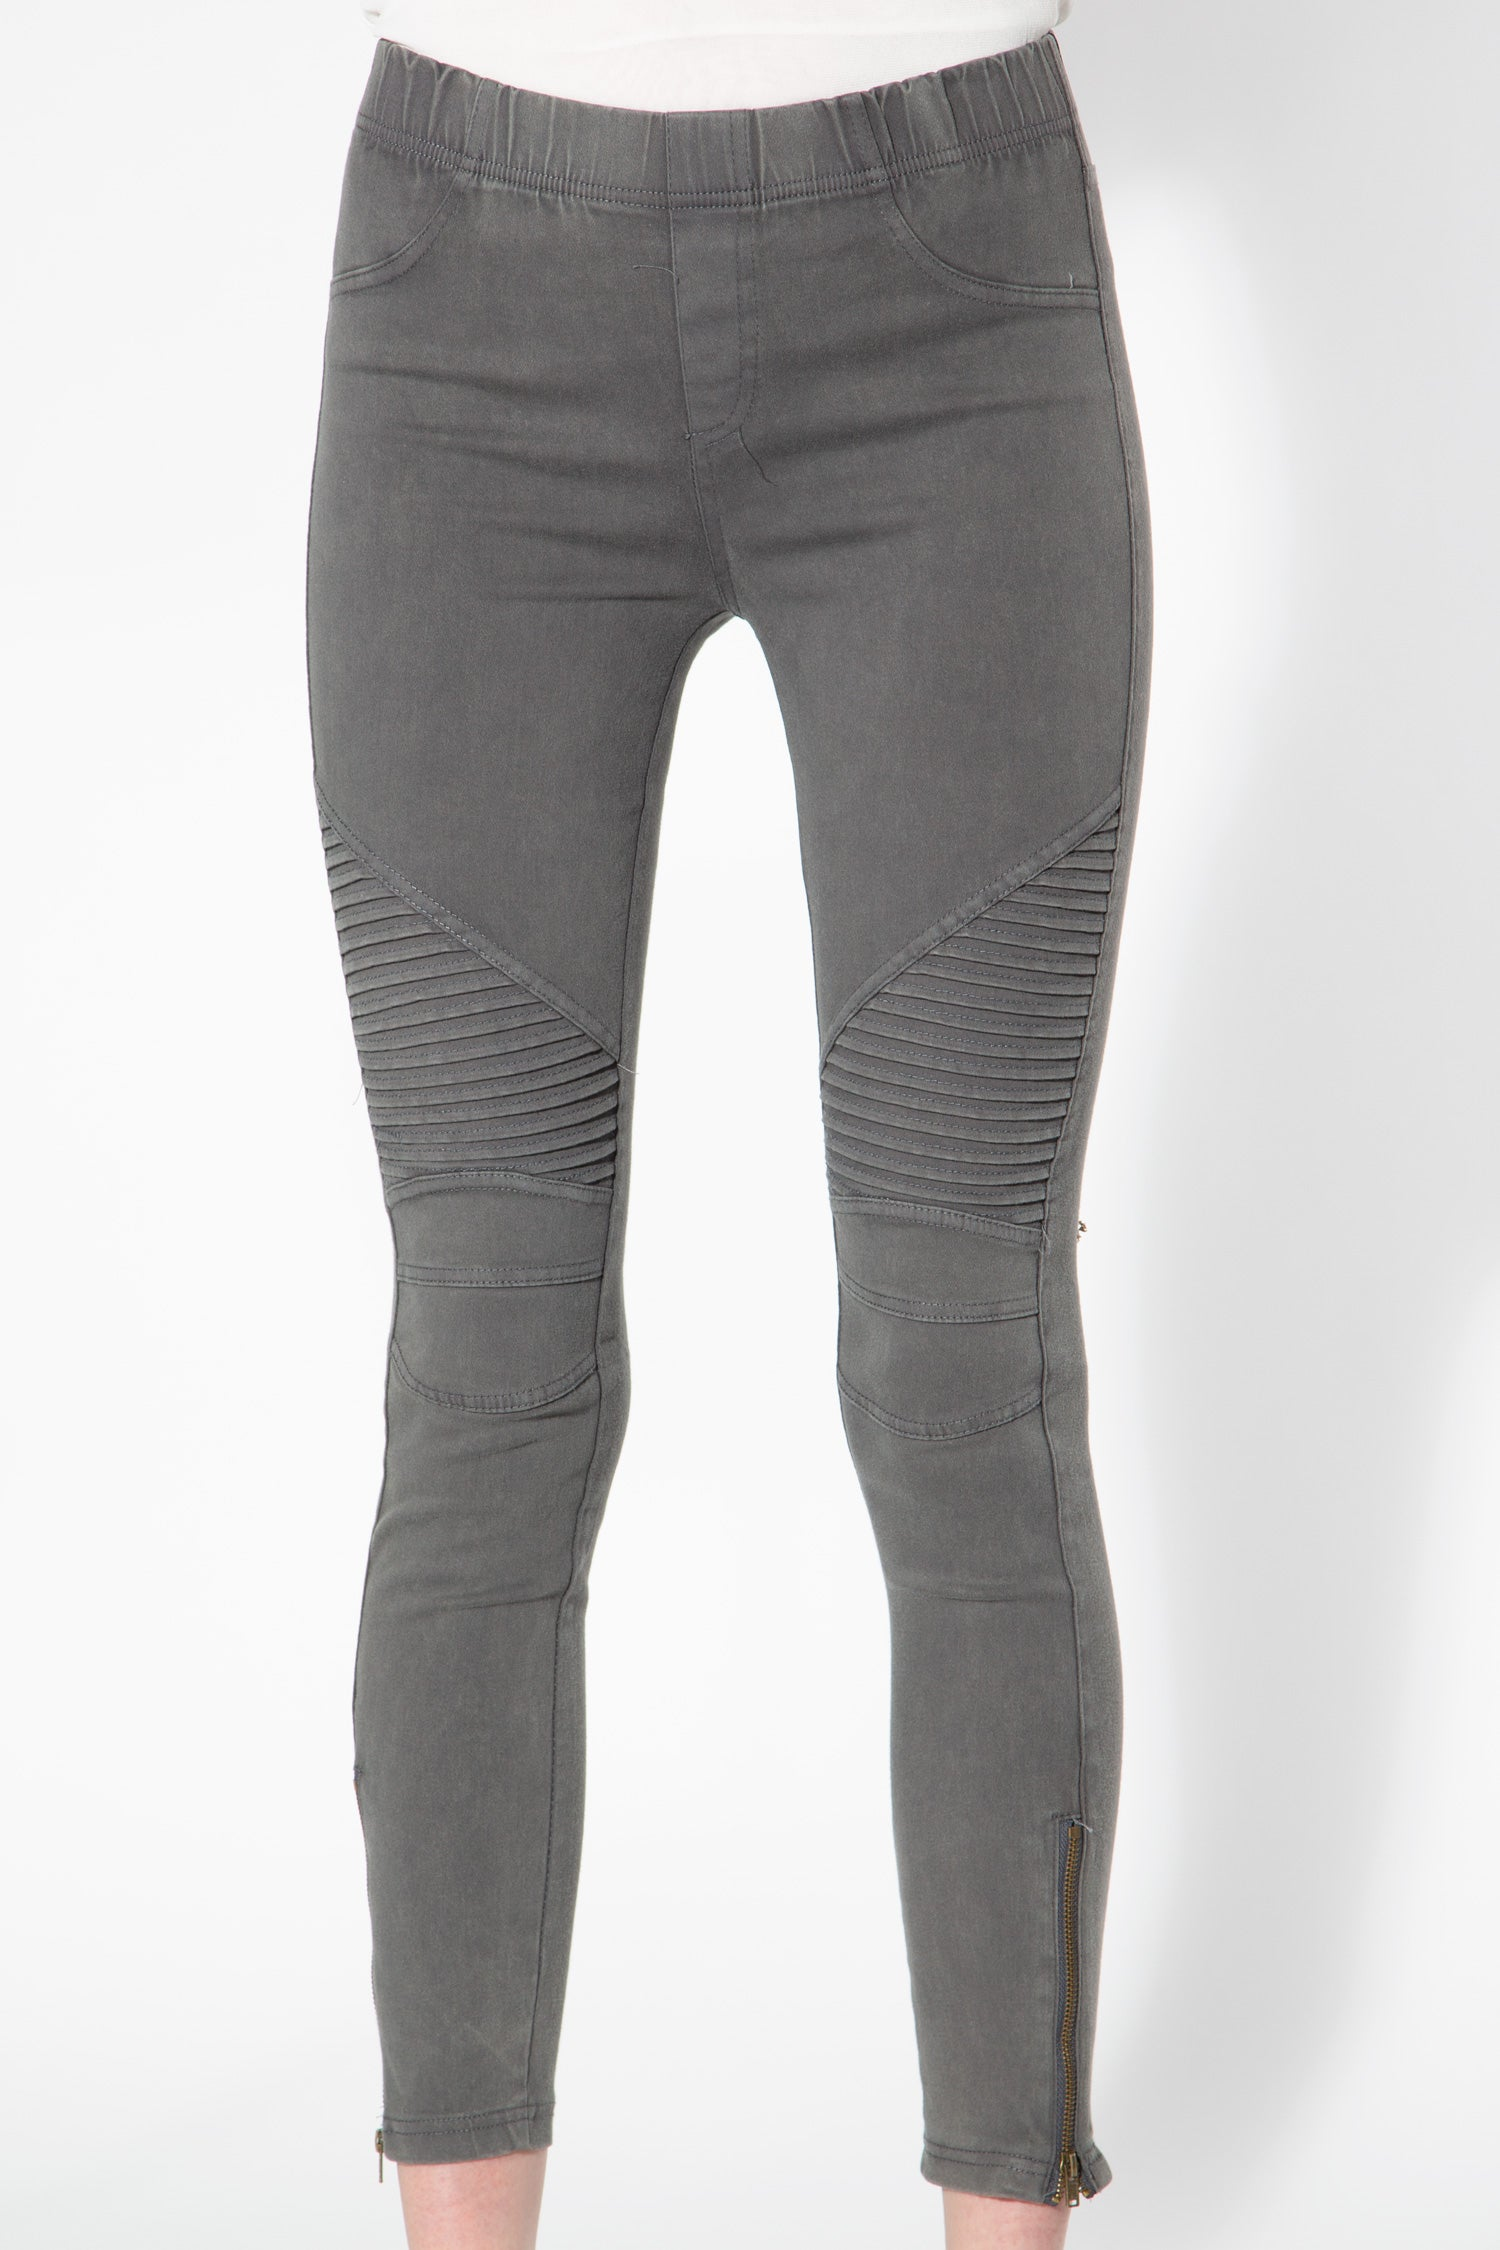 Piper Jeggings in Grey